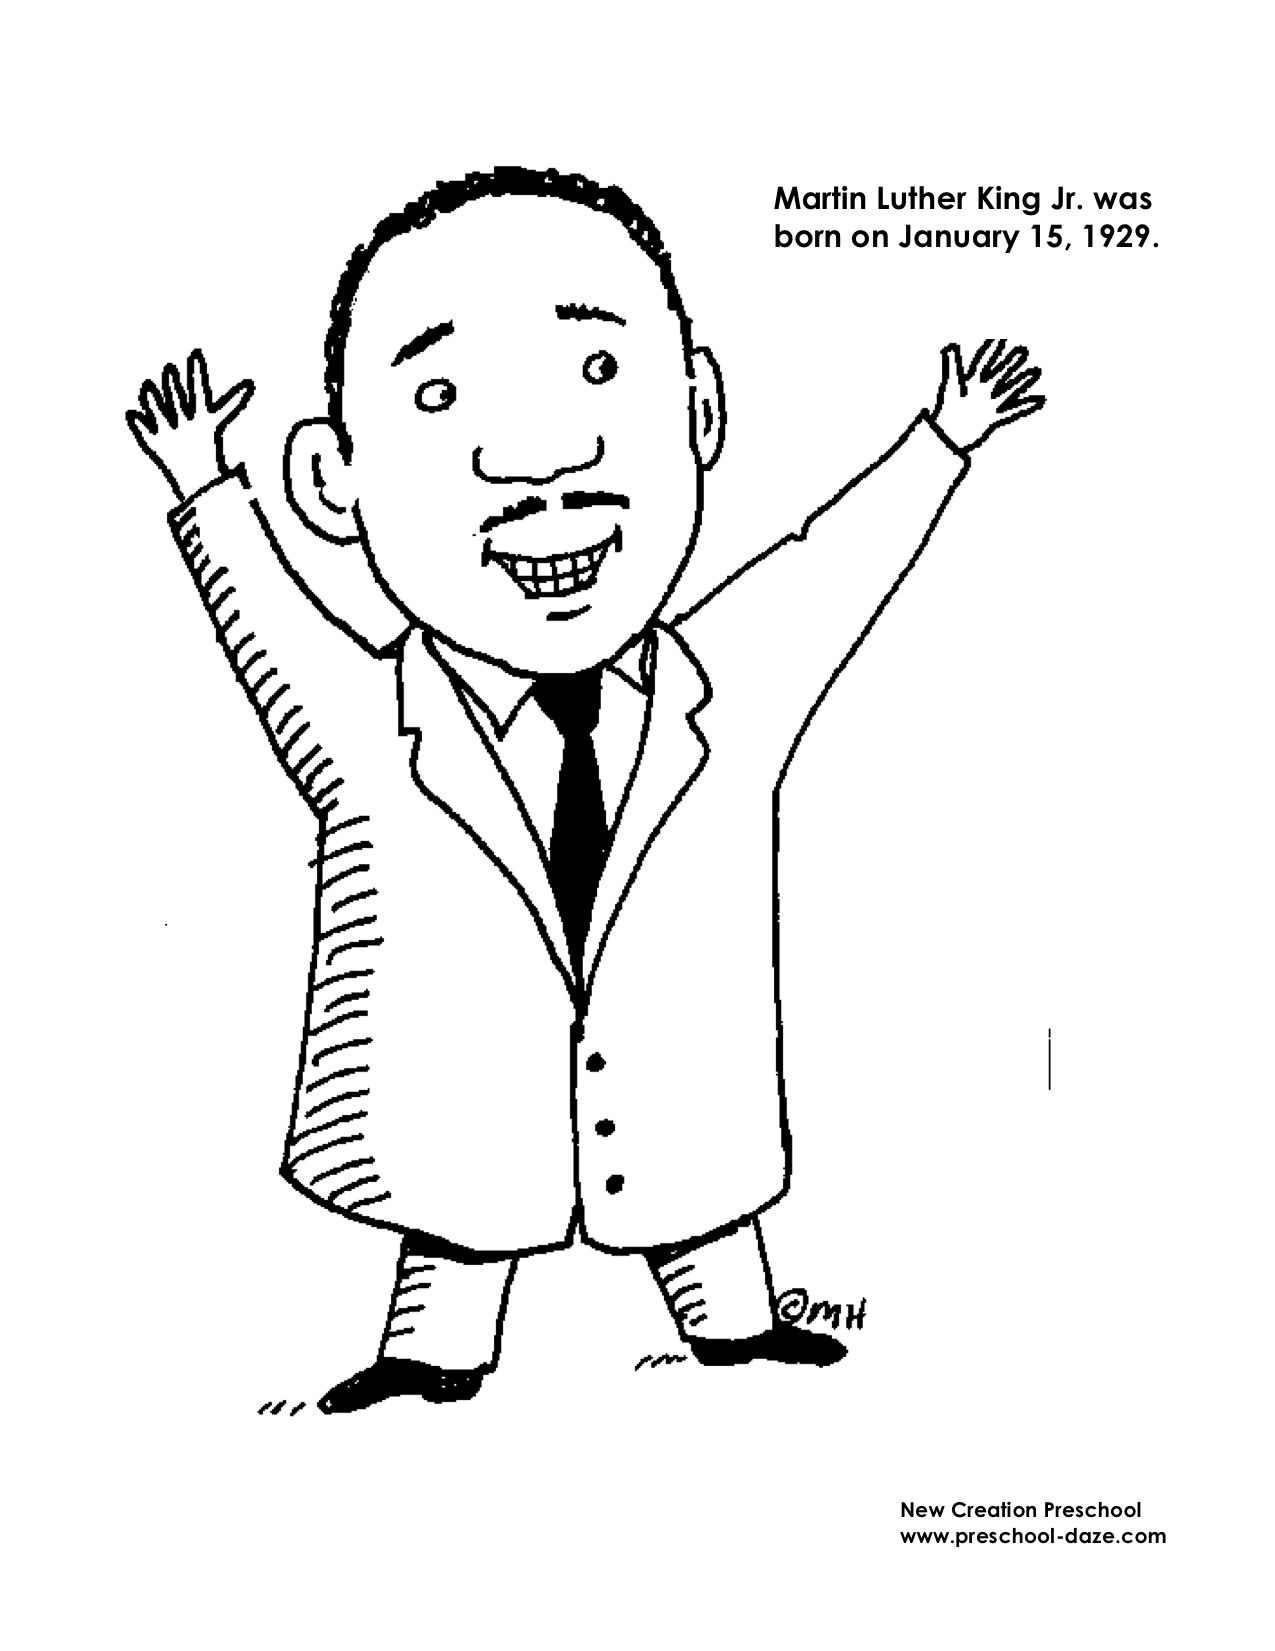 Coloring Pages Coloring Pages Martin Luther King Jr 1000 images about mlk on pinterest coloring pages preschool ideas and martin luther king day